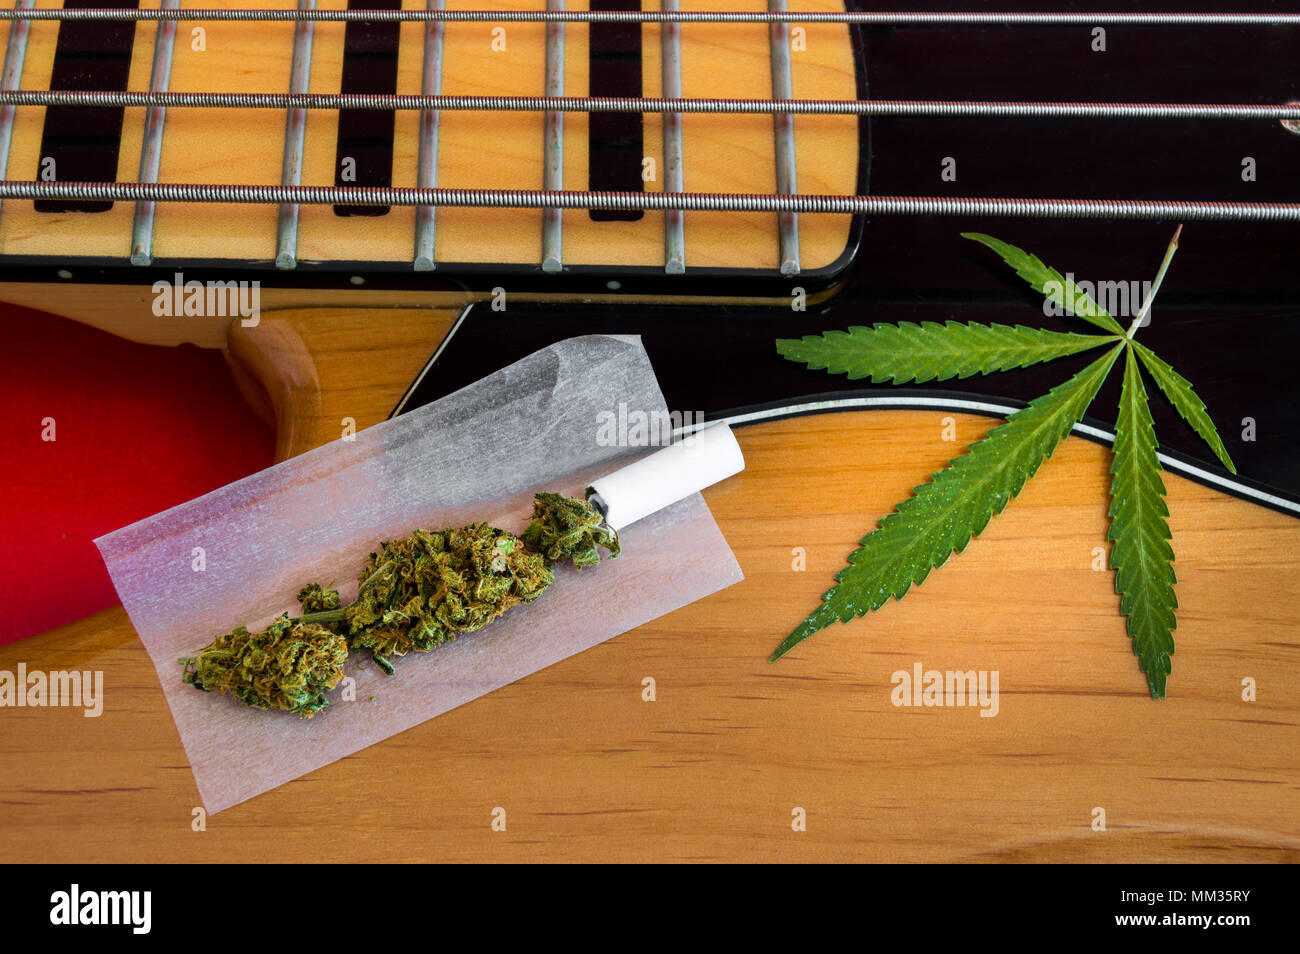 Joint ready to roll and marijuana leaf on vintage electric bass of four strings. Musical instrument and drugs, concept of look for inspiration. - Stock Image